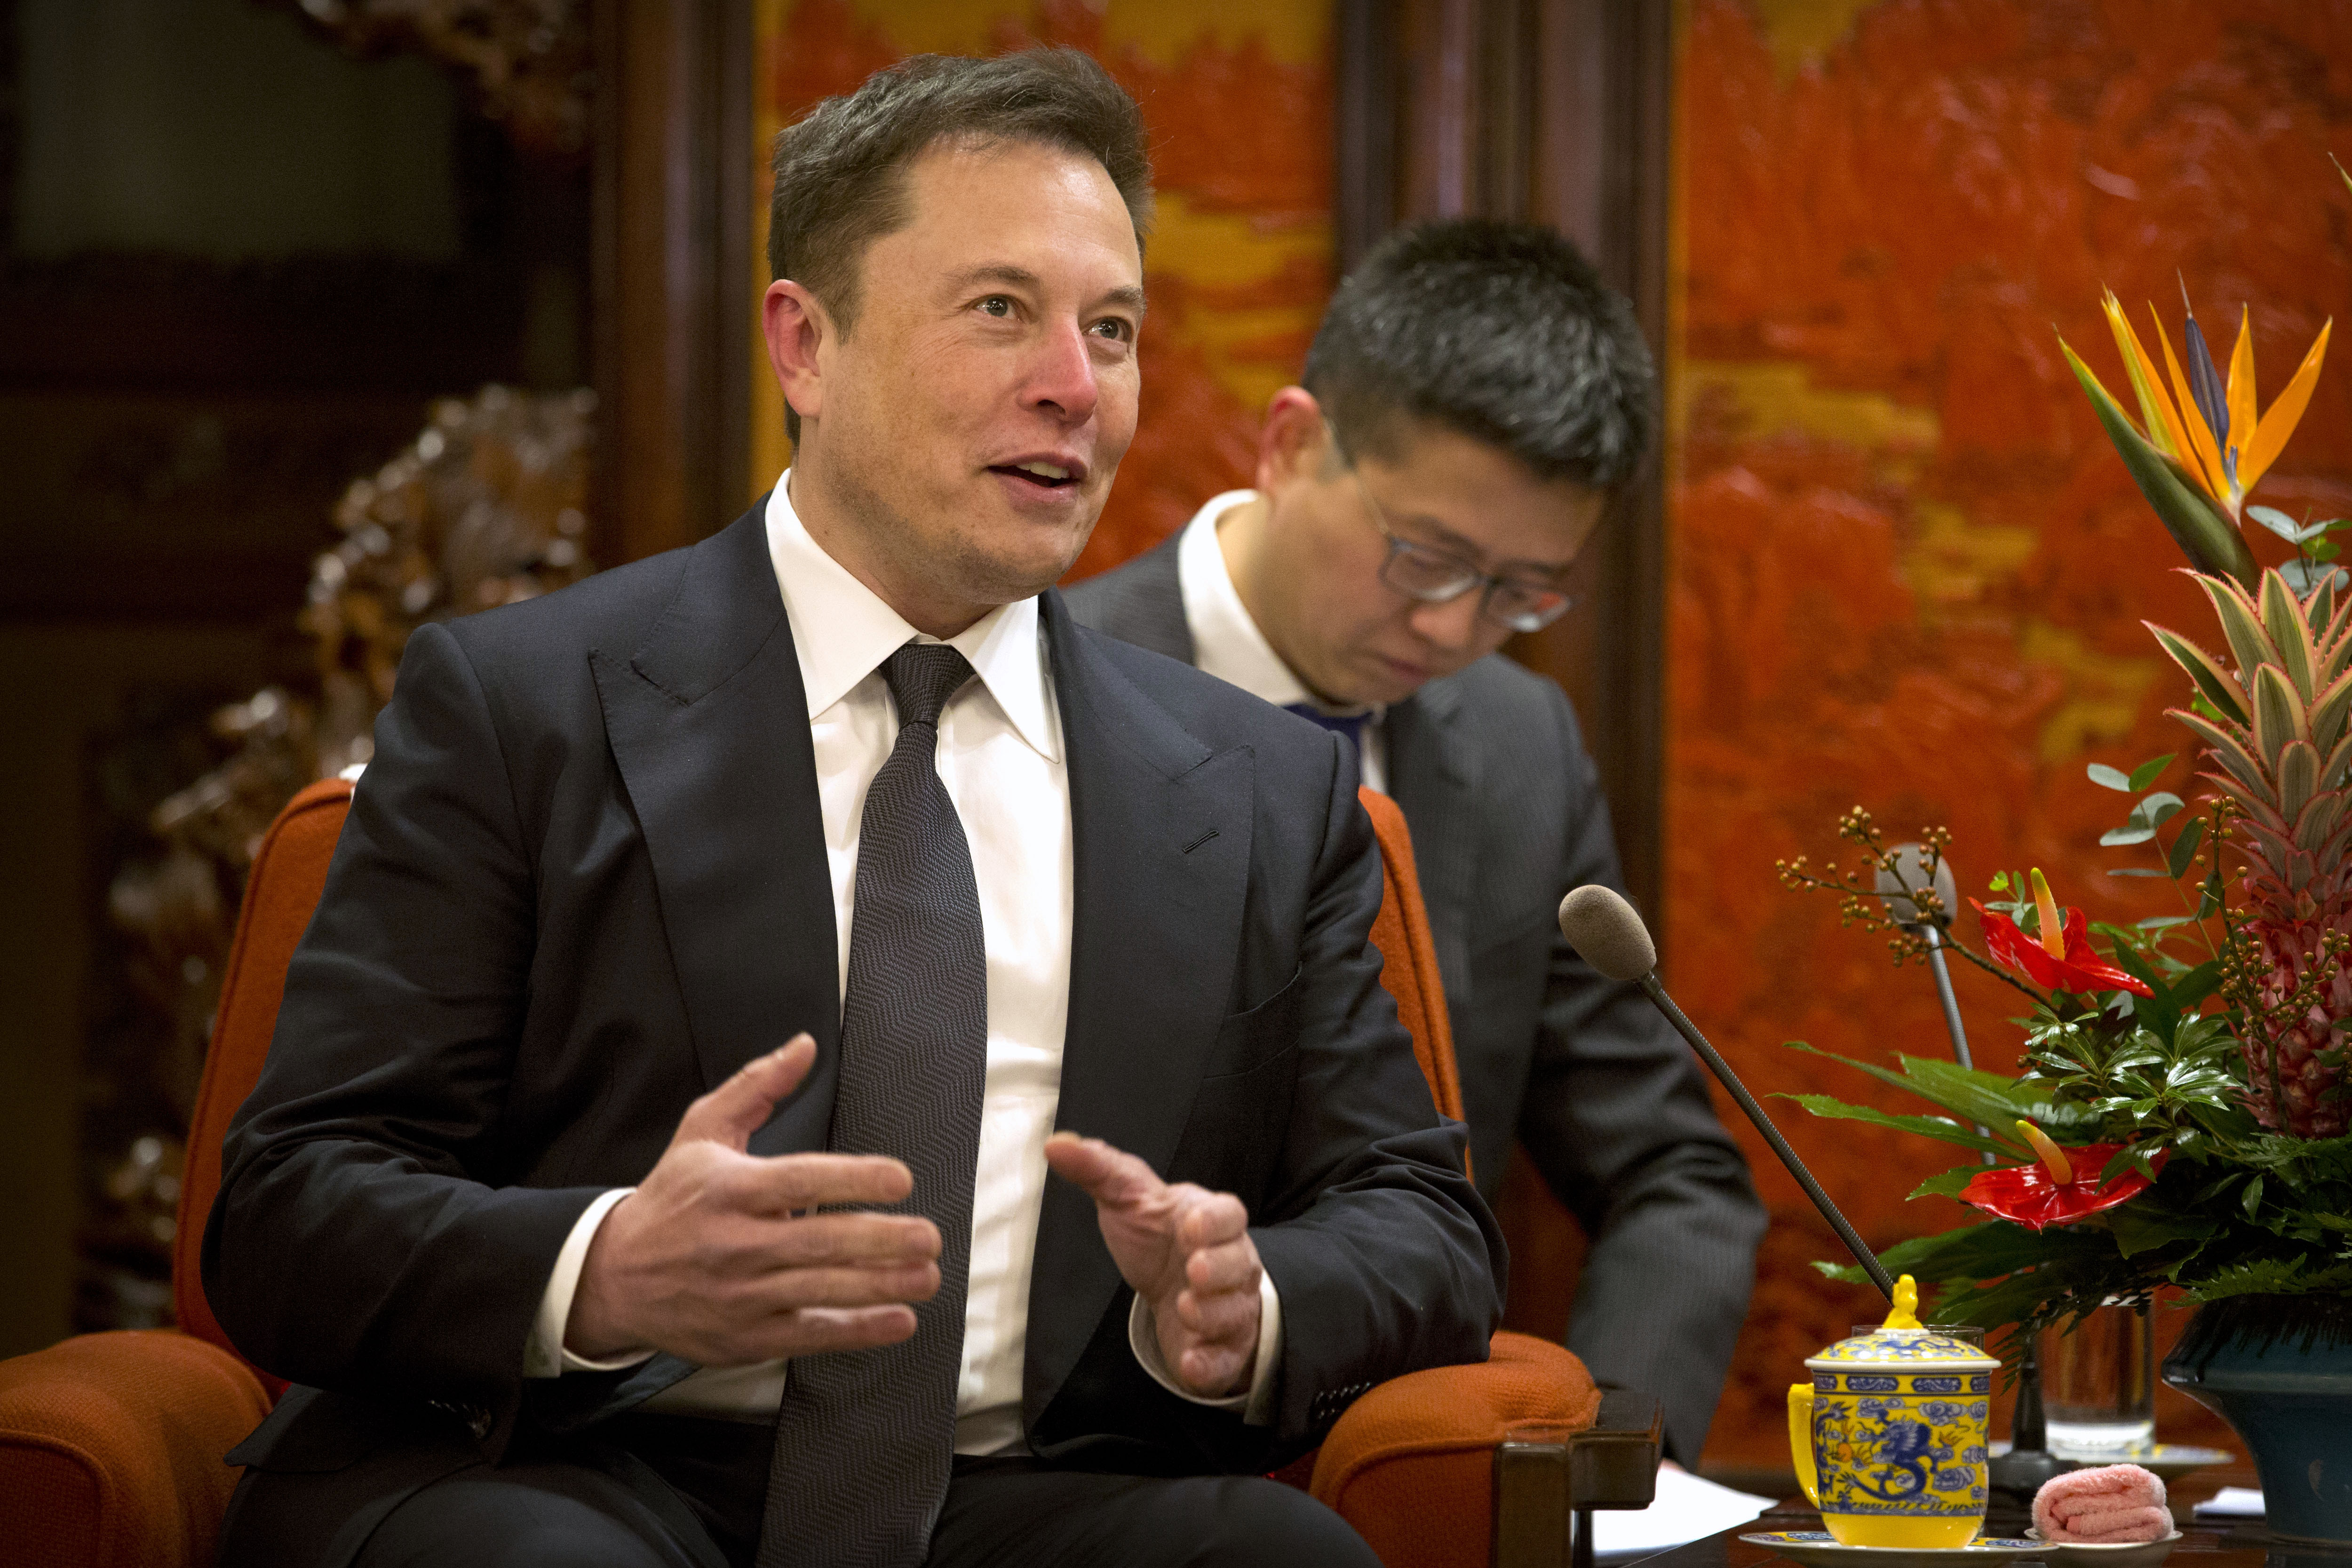 Tesla CEO Elon Musk speaks during a meeting with Chinese Premier Li Keqiang.